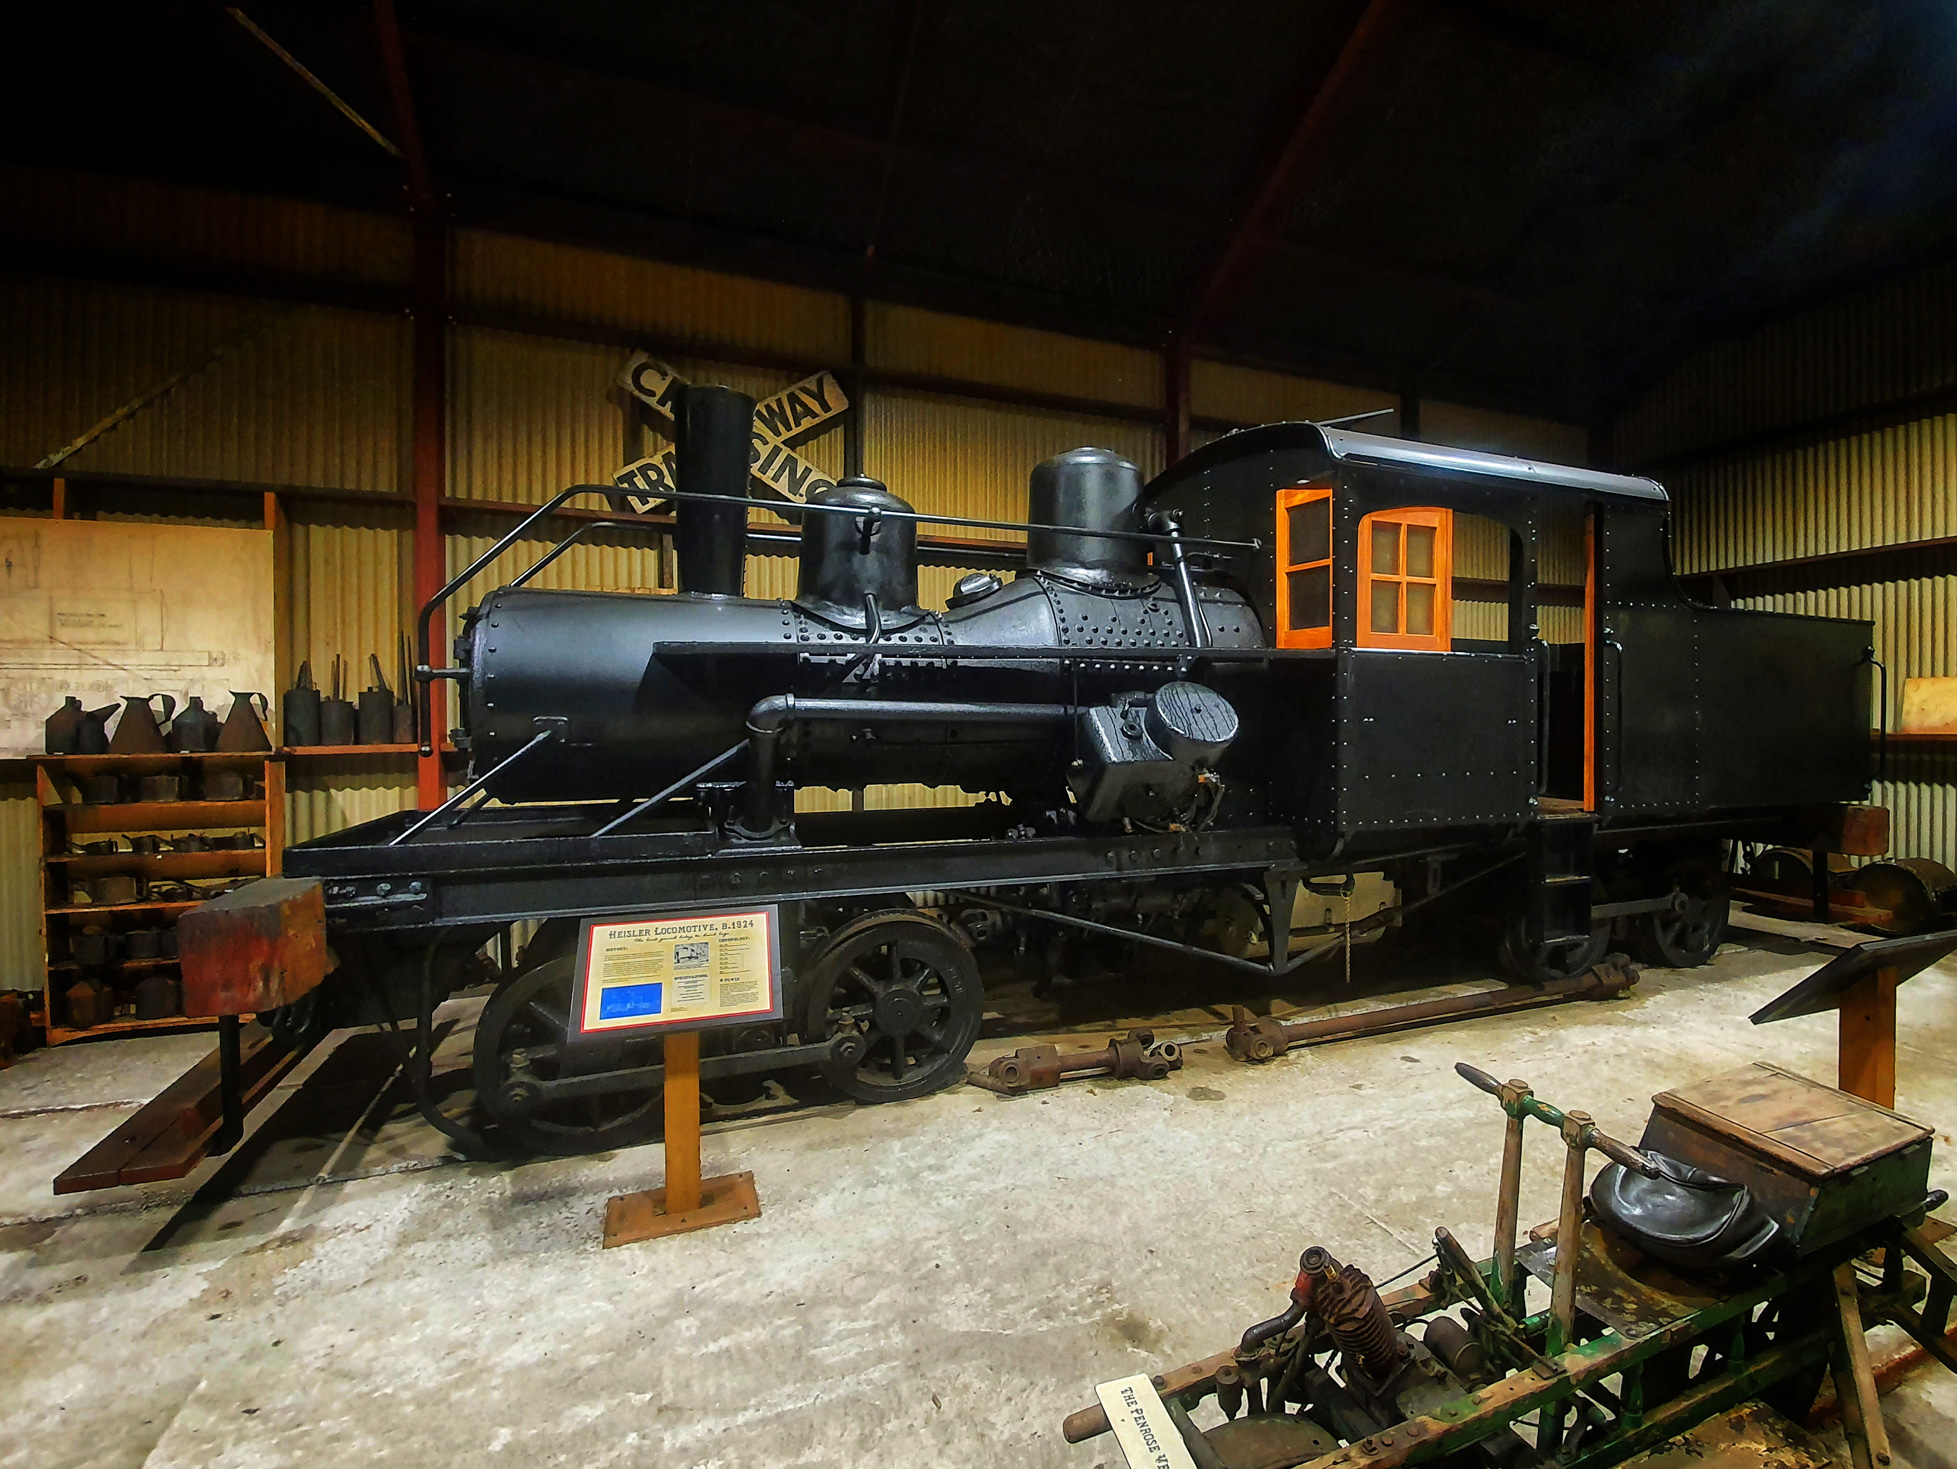 Heisler Steam Locomotive